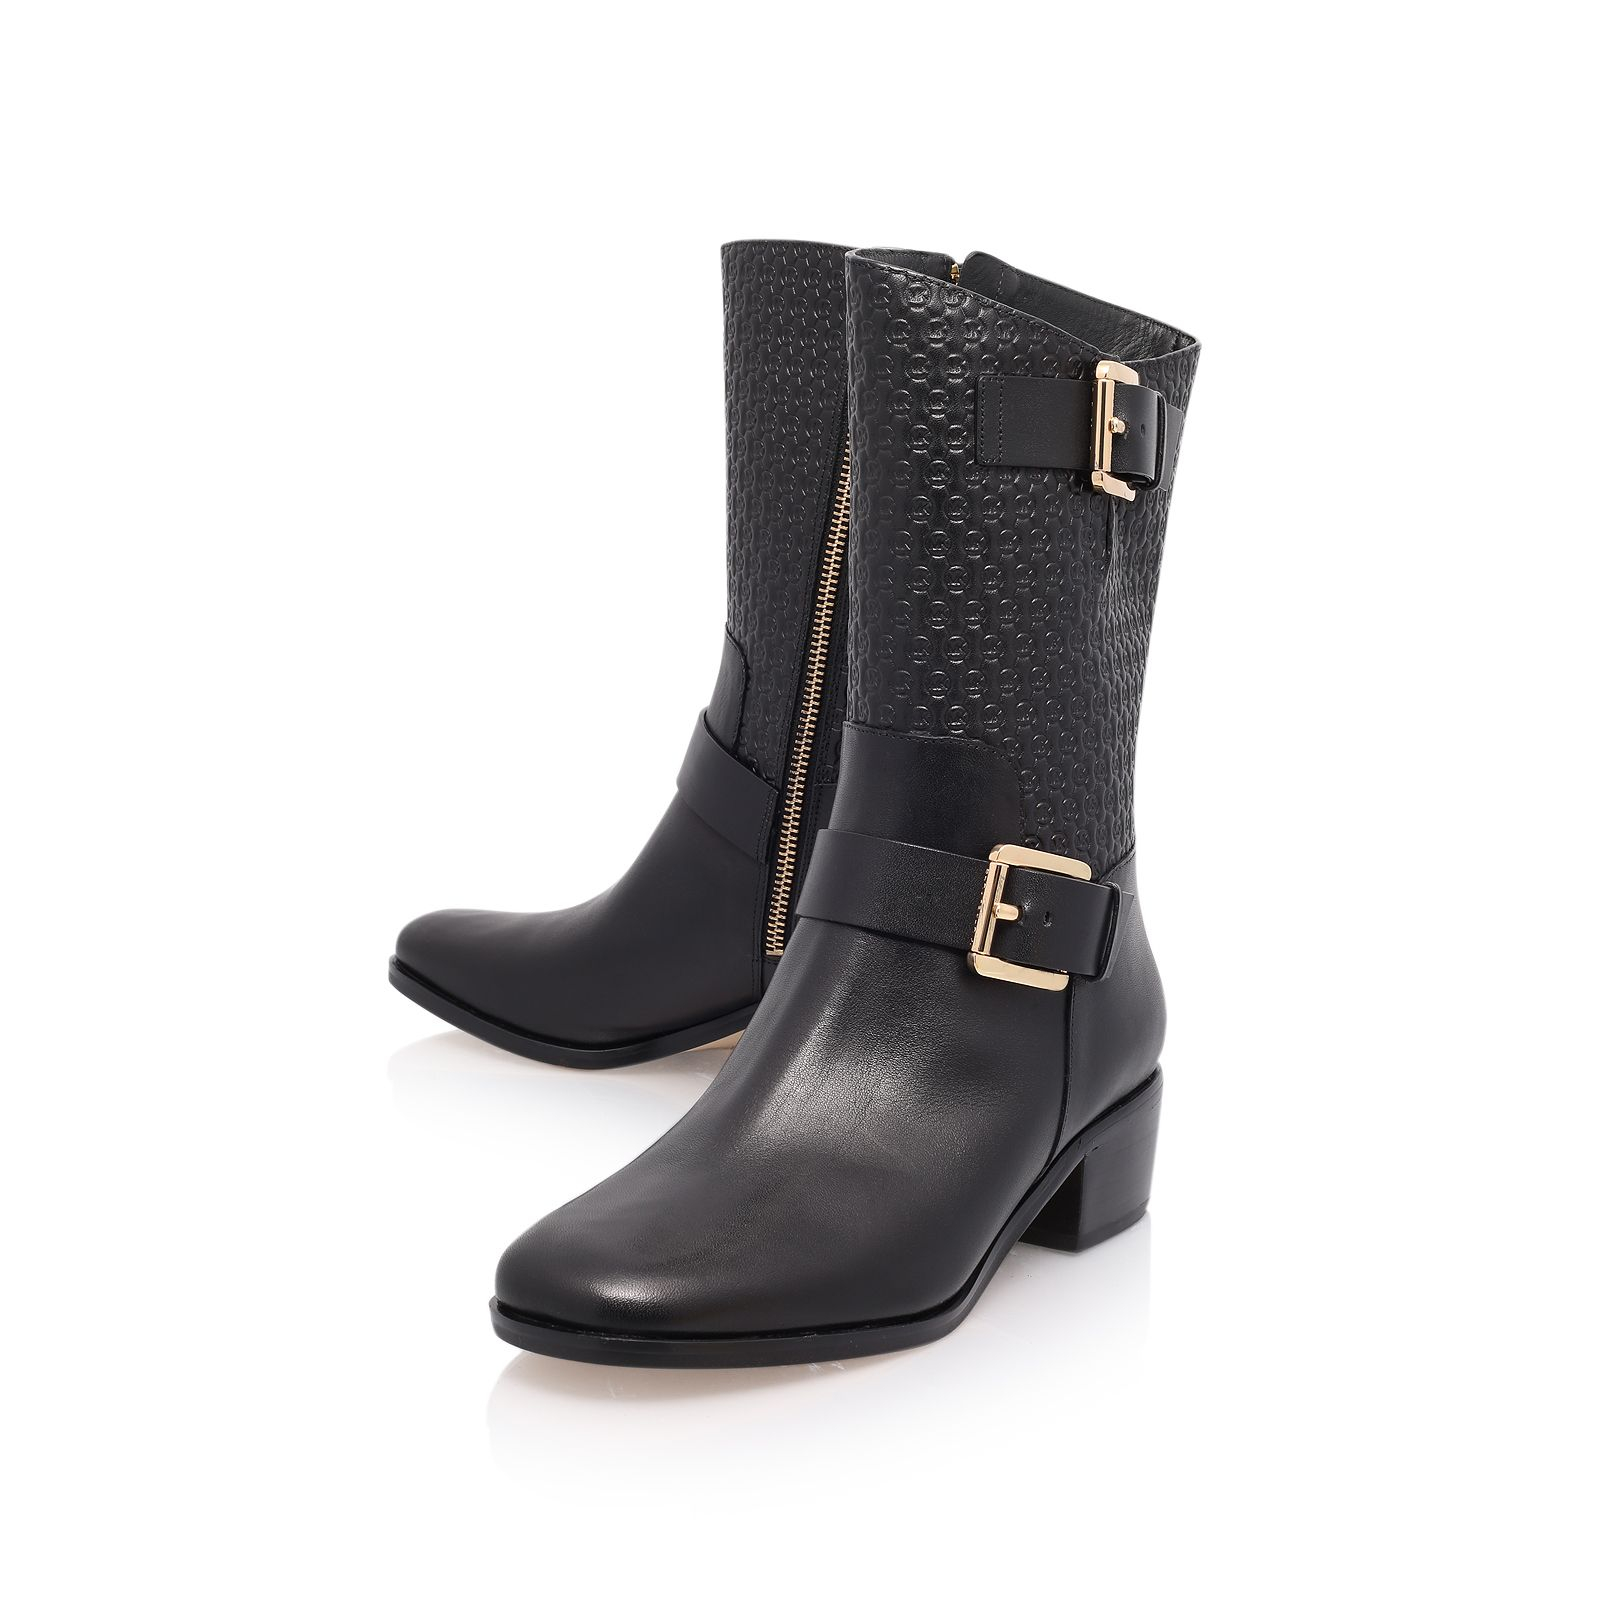 Michael Kors Leather Breck Ankle Boot in Black